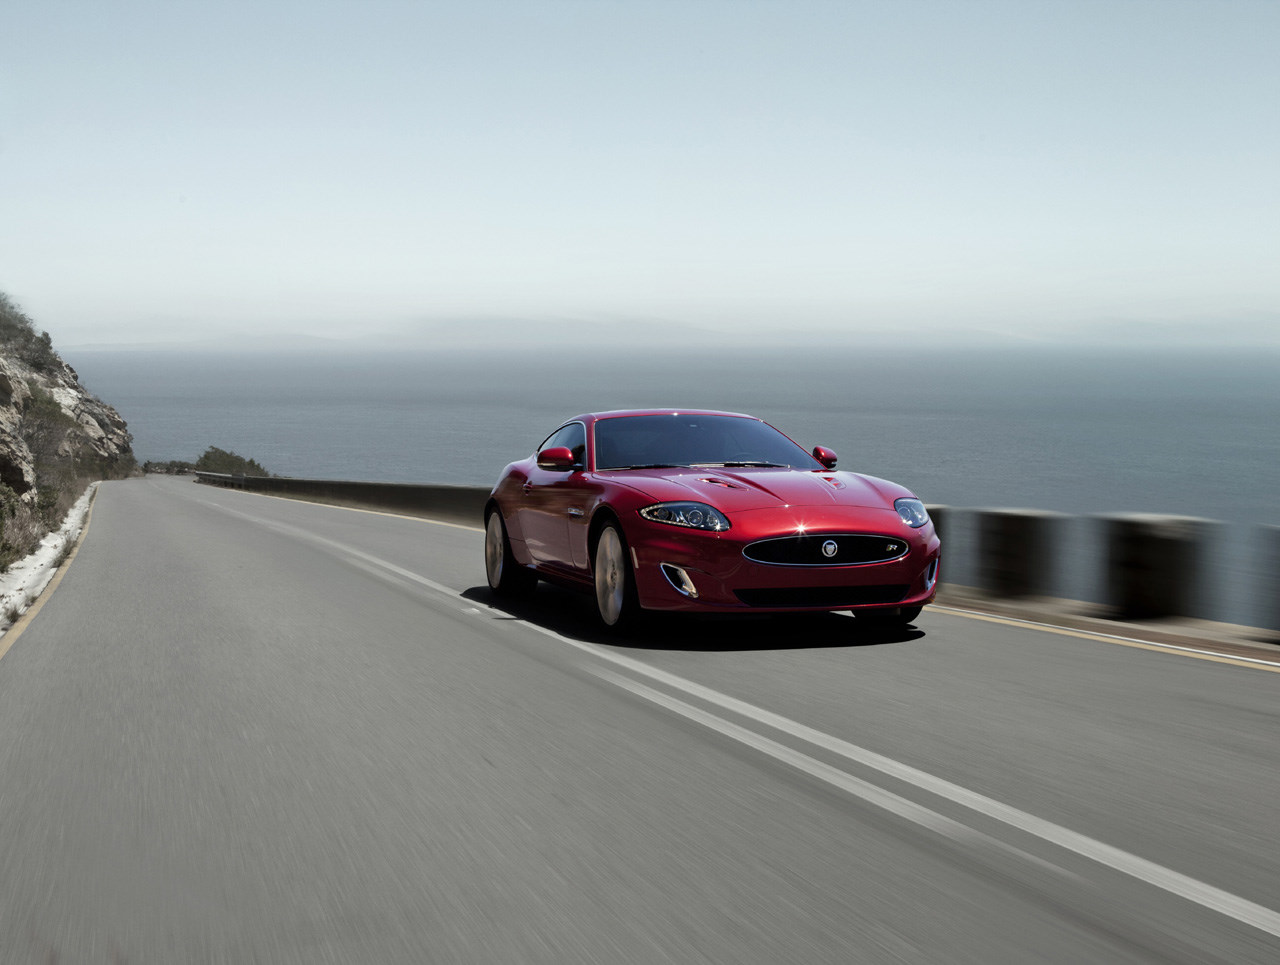 xkr-coupe201200.jpg